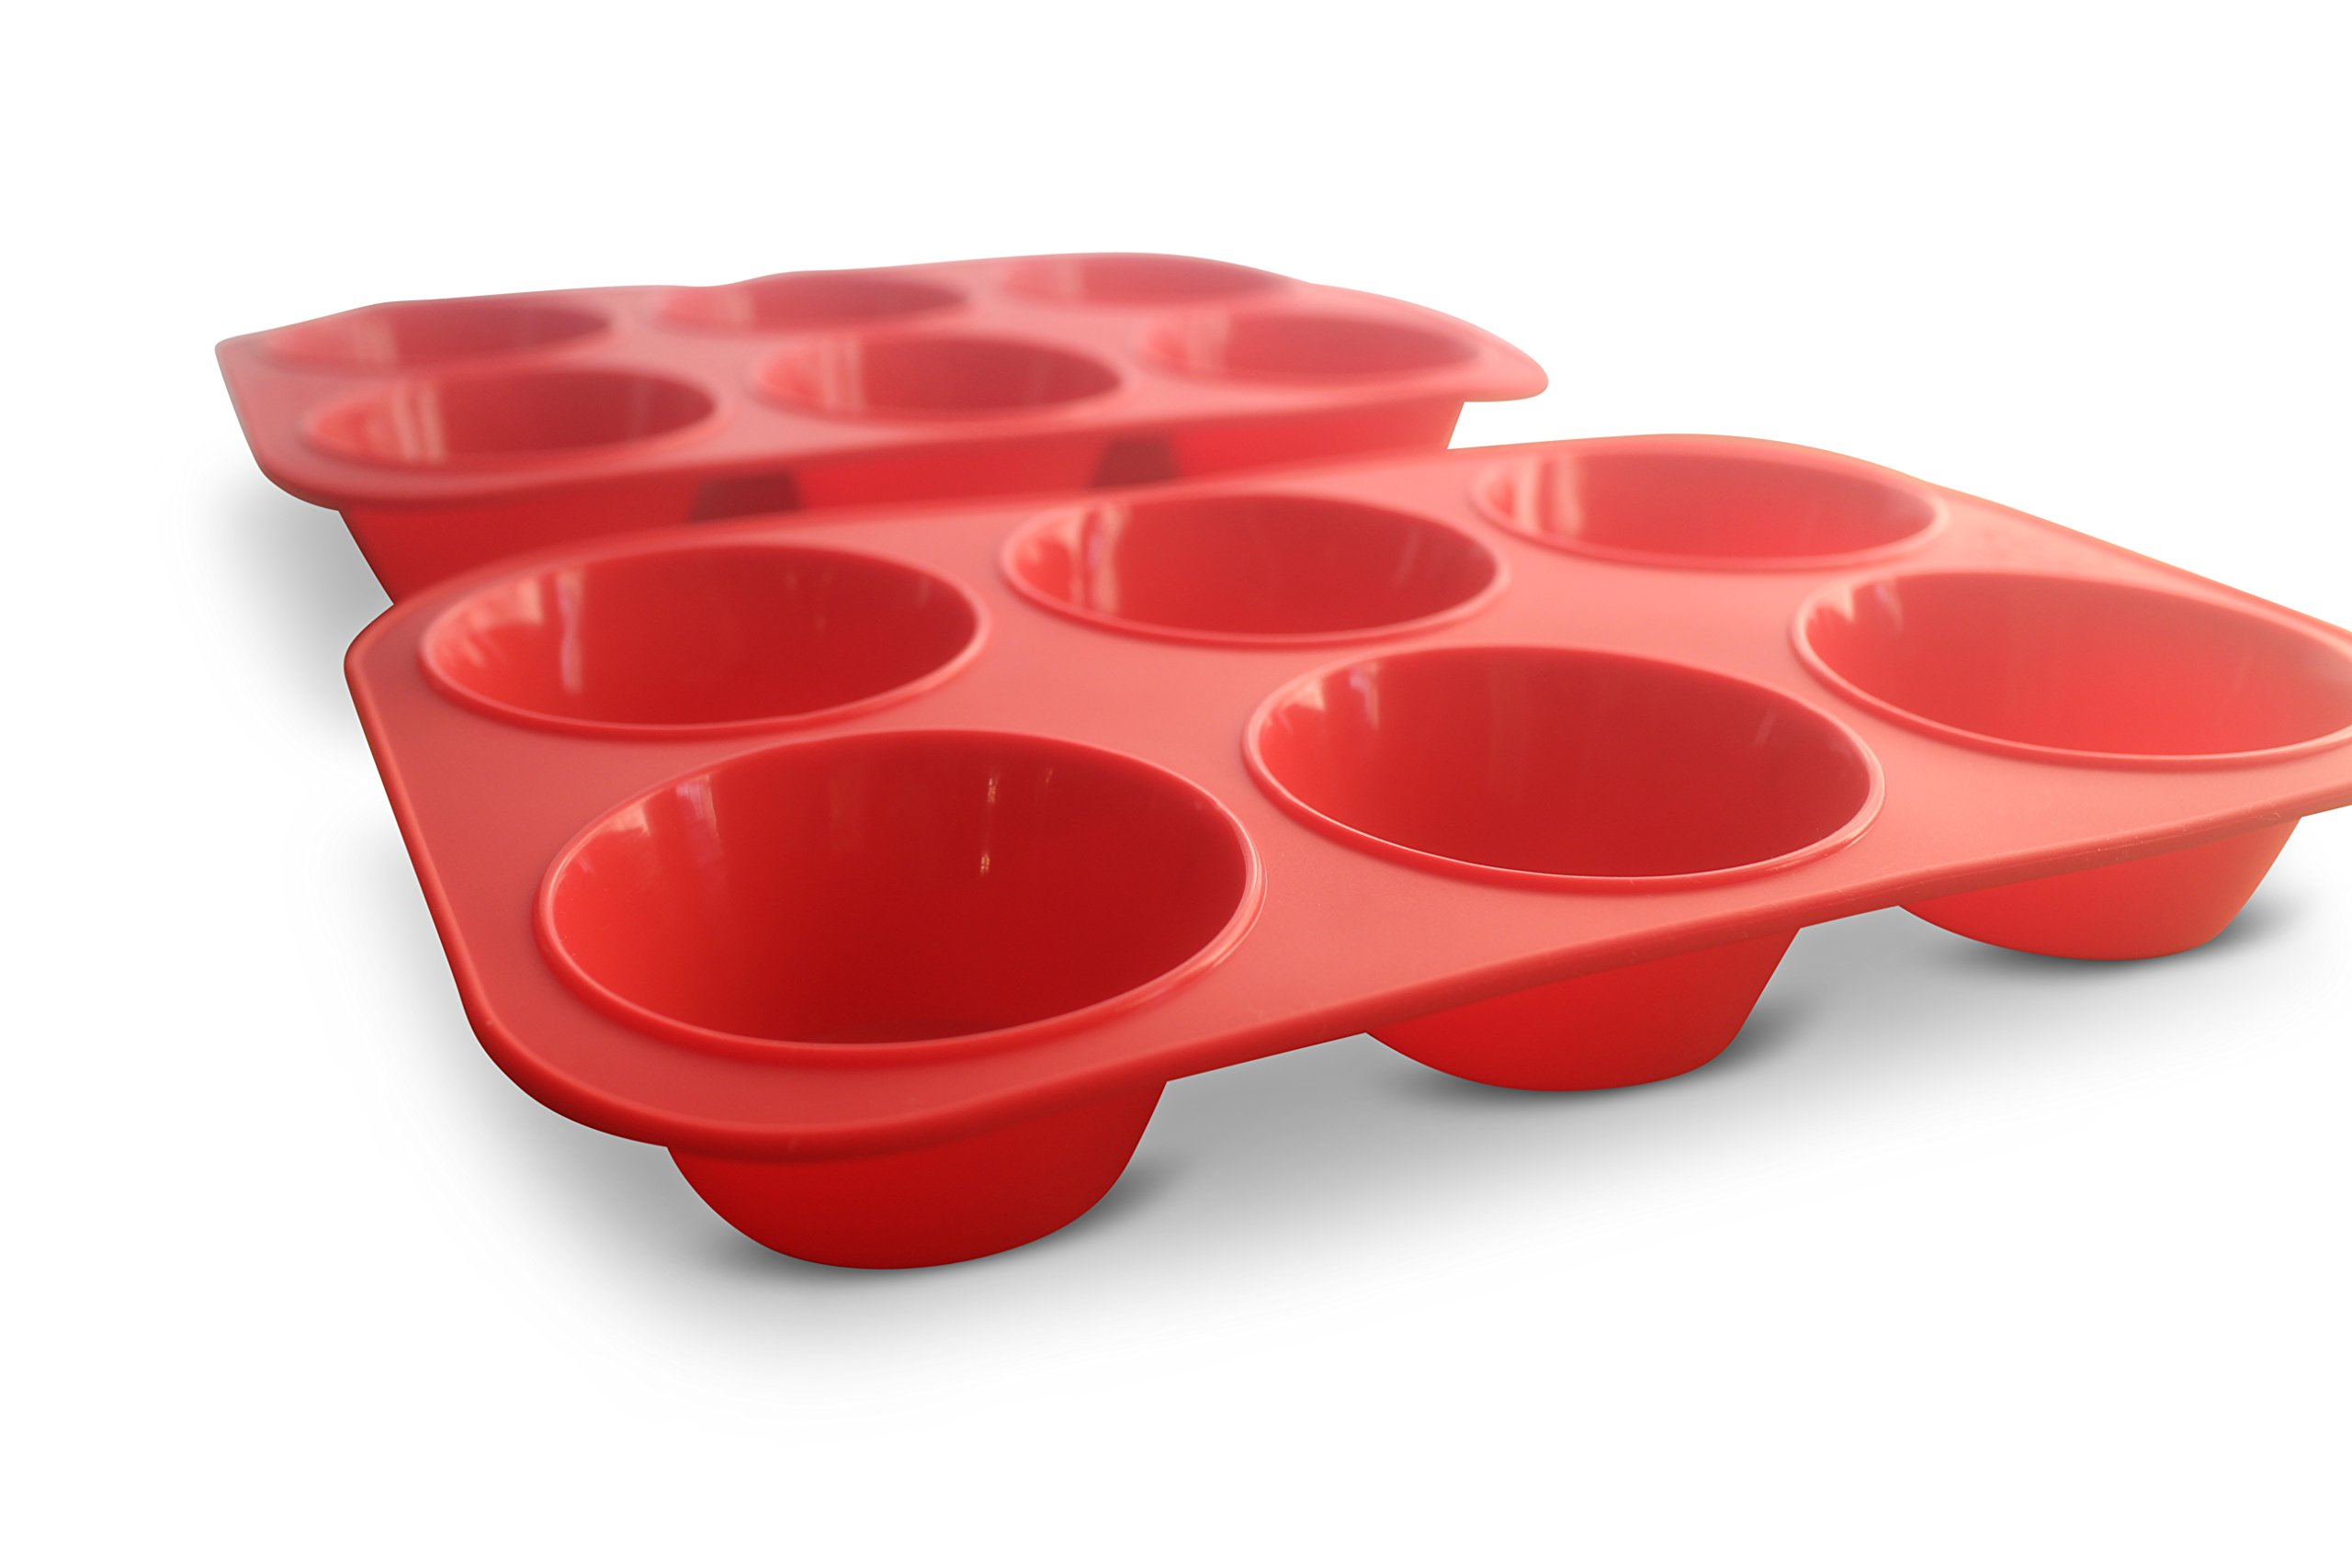 XXL Jumbo Silicone Muffin Pan - 3.5'' Texas Sized Commercial Muffin Pan Set of 2 (2, Red)